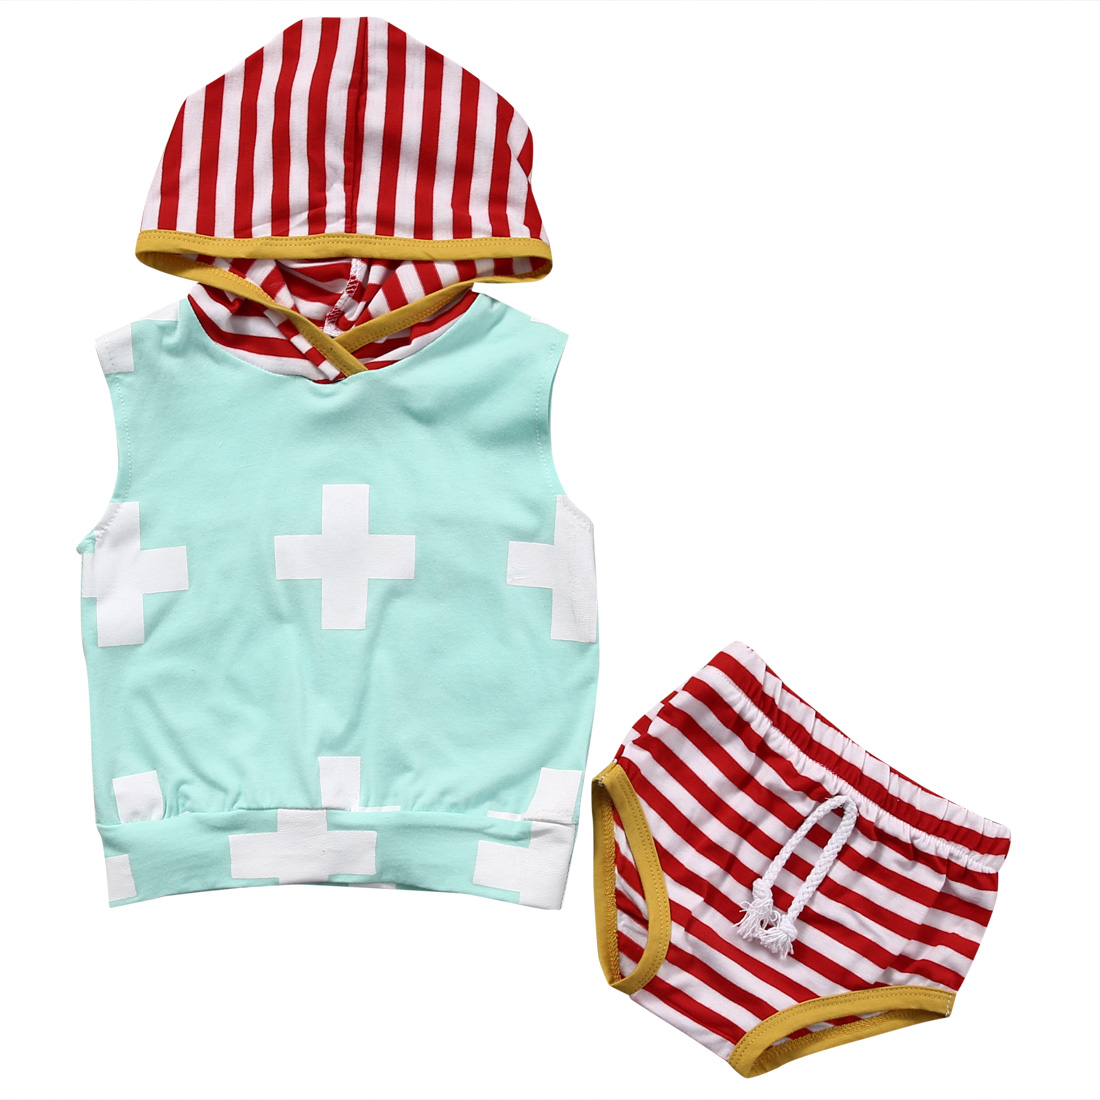 Newborn Toddler Kids Baby Boy Hoodies Tank Tops Shorts Pants Outfit Set Clothes Infant Kid Boys Clothing Children Kid Cotton infant baby boy girl 2pcs clothes set kids short sleeve you serious clark letters romper tops car print pants 2pcs outfit set